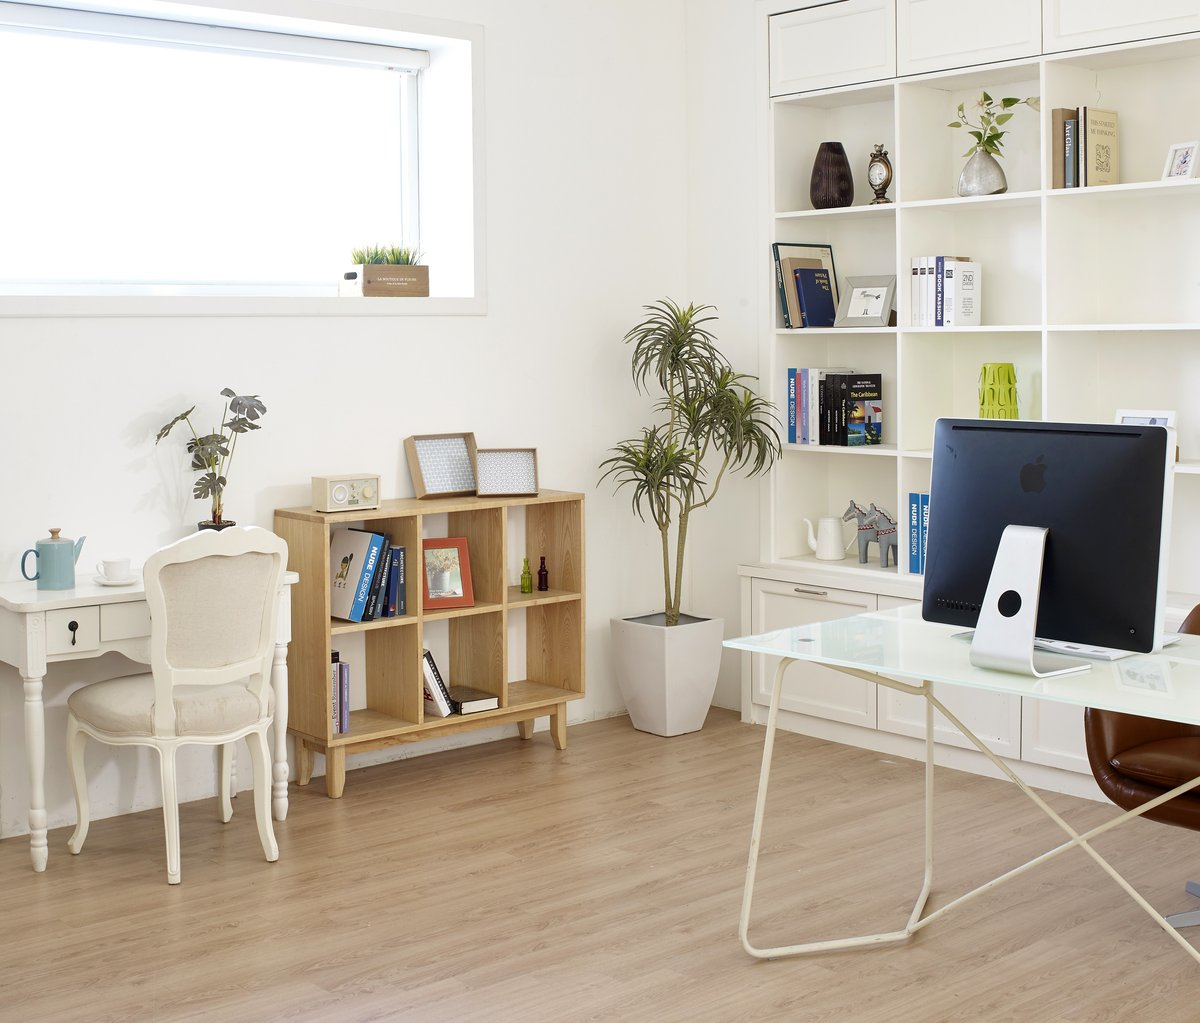 Home Office with modern furniture and wood floor